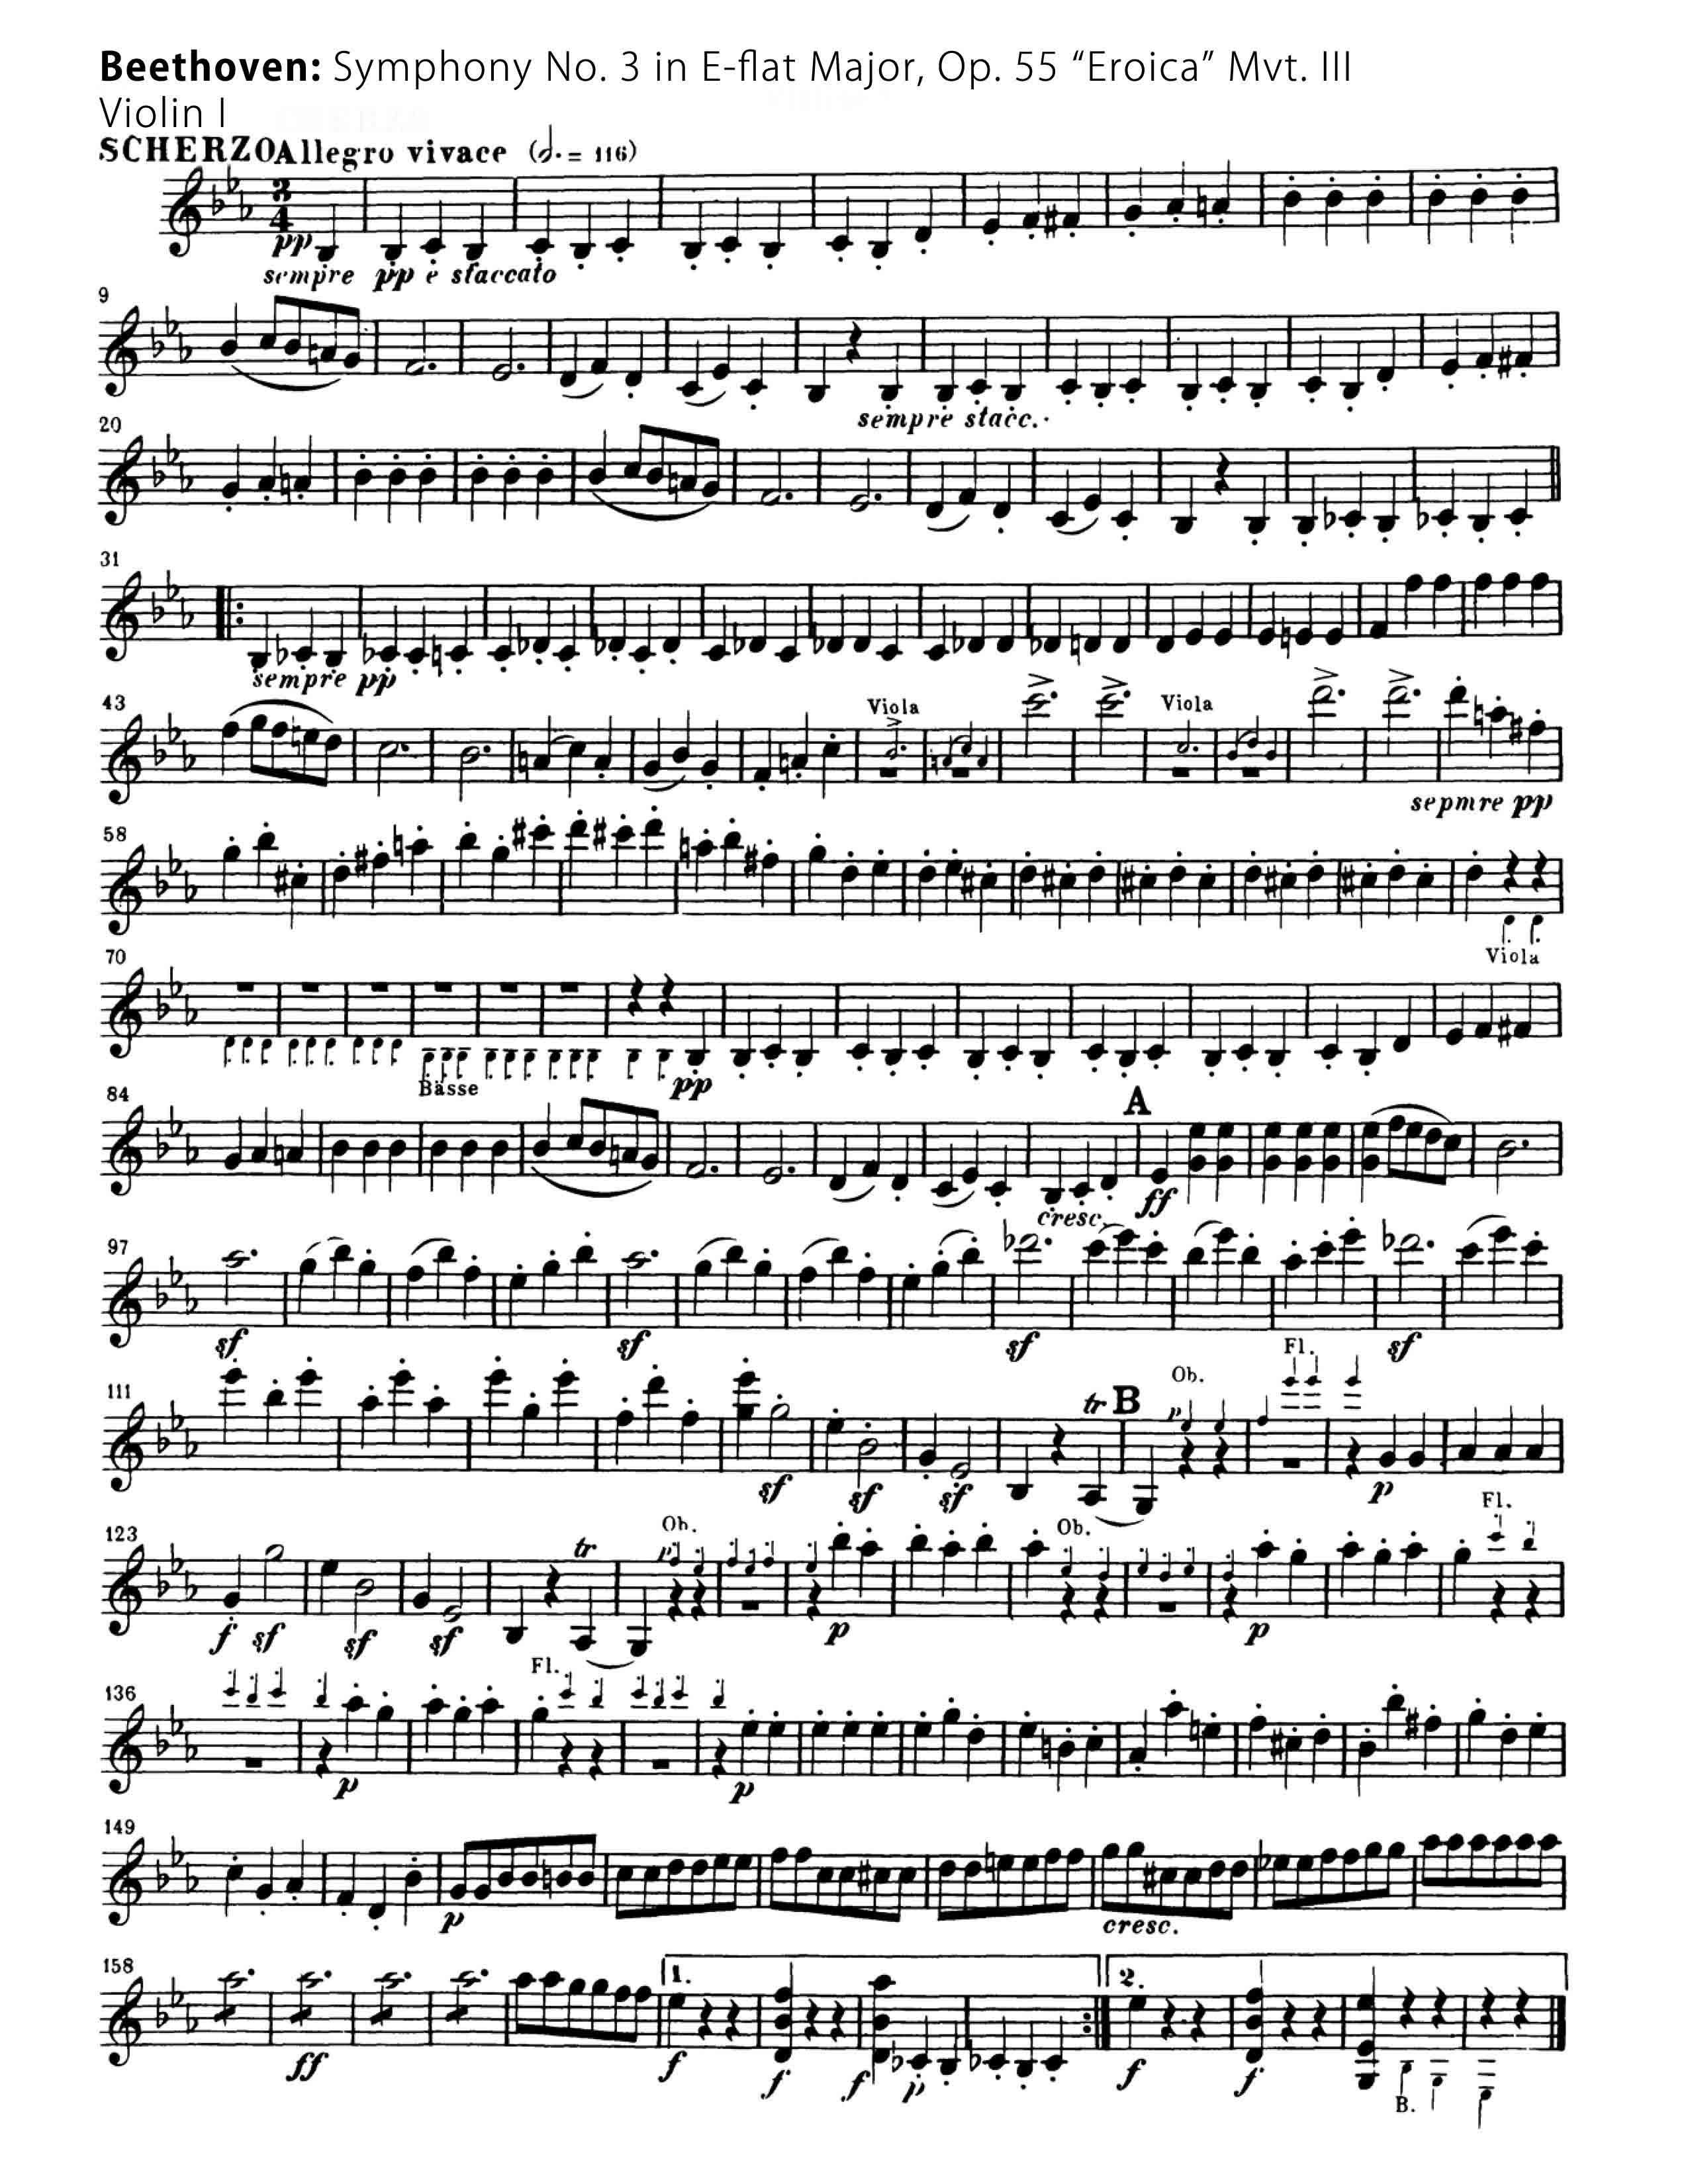 Beethoven Symphony 3 mvt 3-Orchestral Violin Excerpts